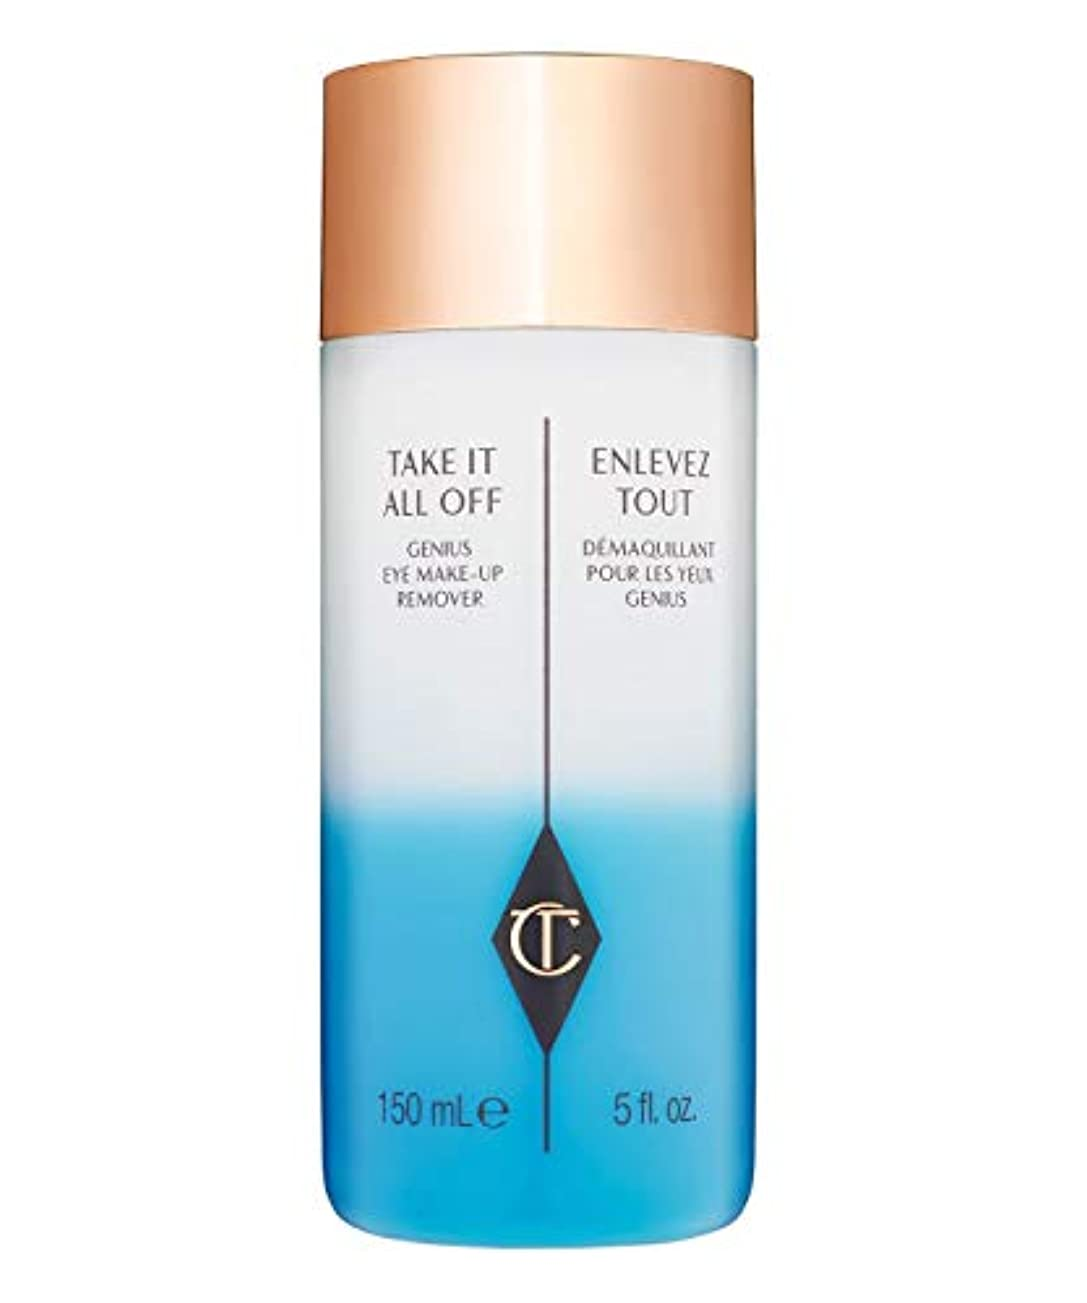 注釈サリー言及するCharlotte Tilbury Take It All Off Genius Eye Make-up Remover 150ml シャーロットティルバリー